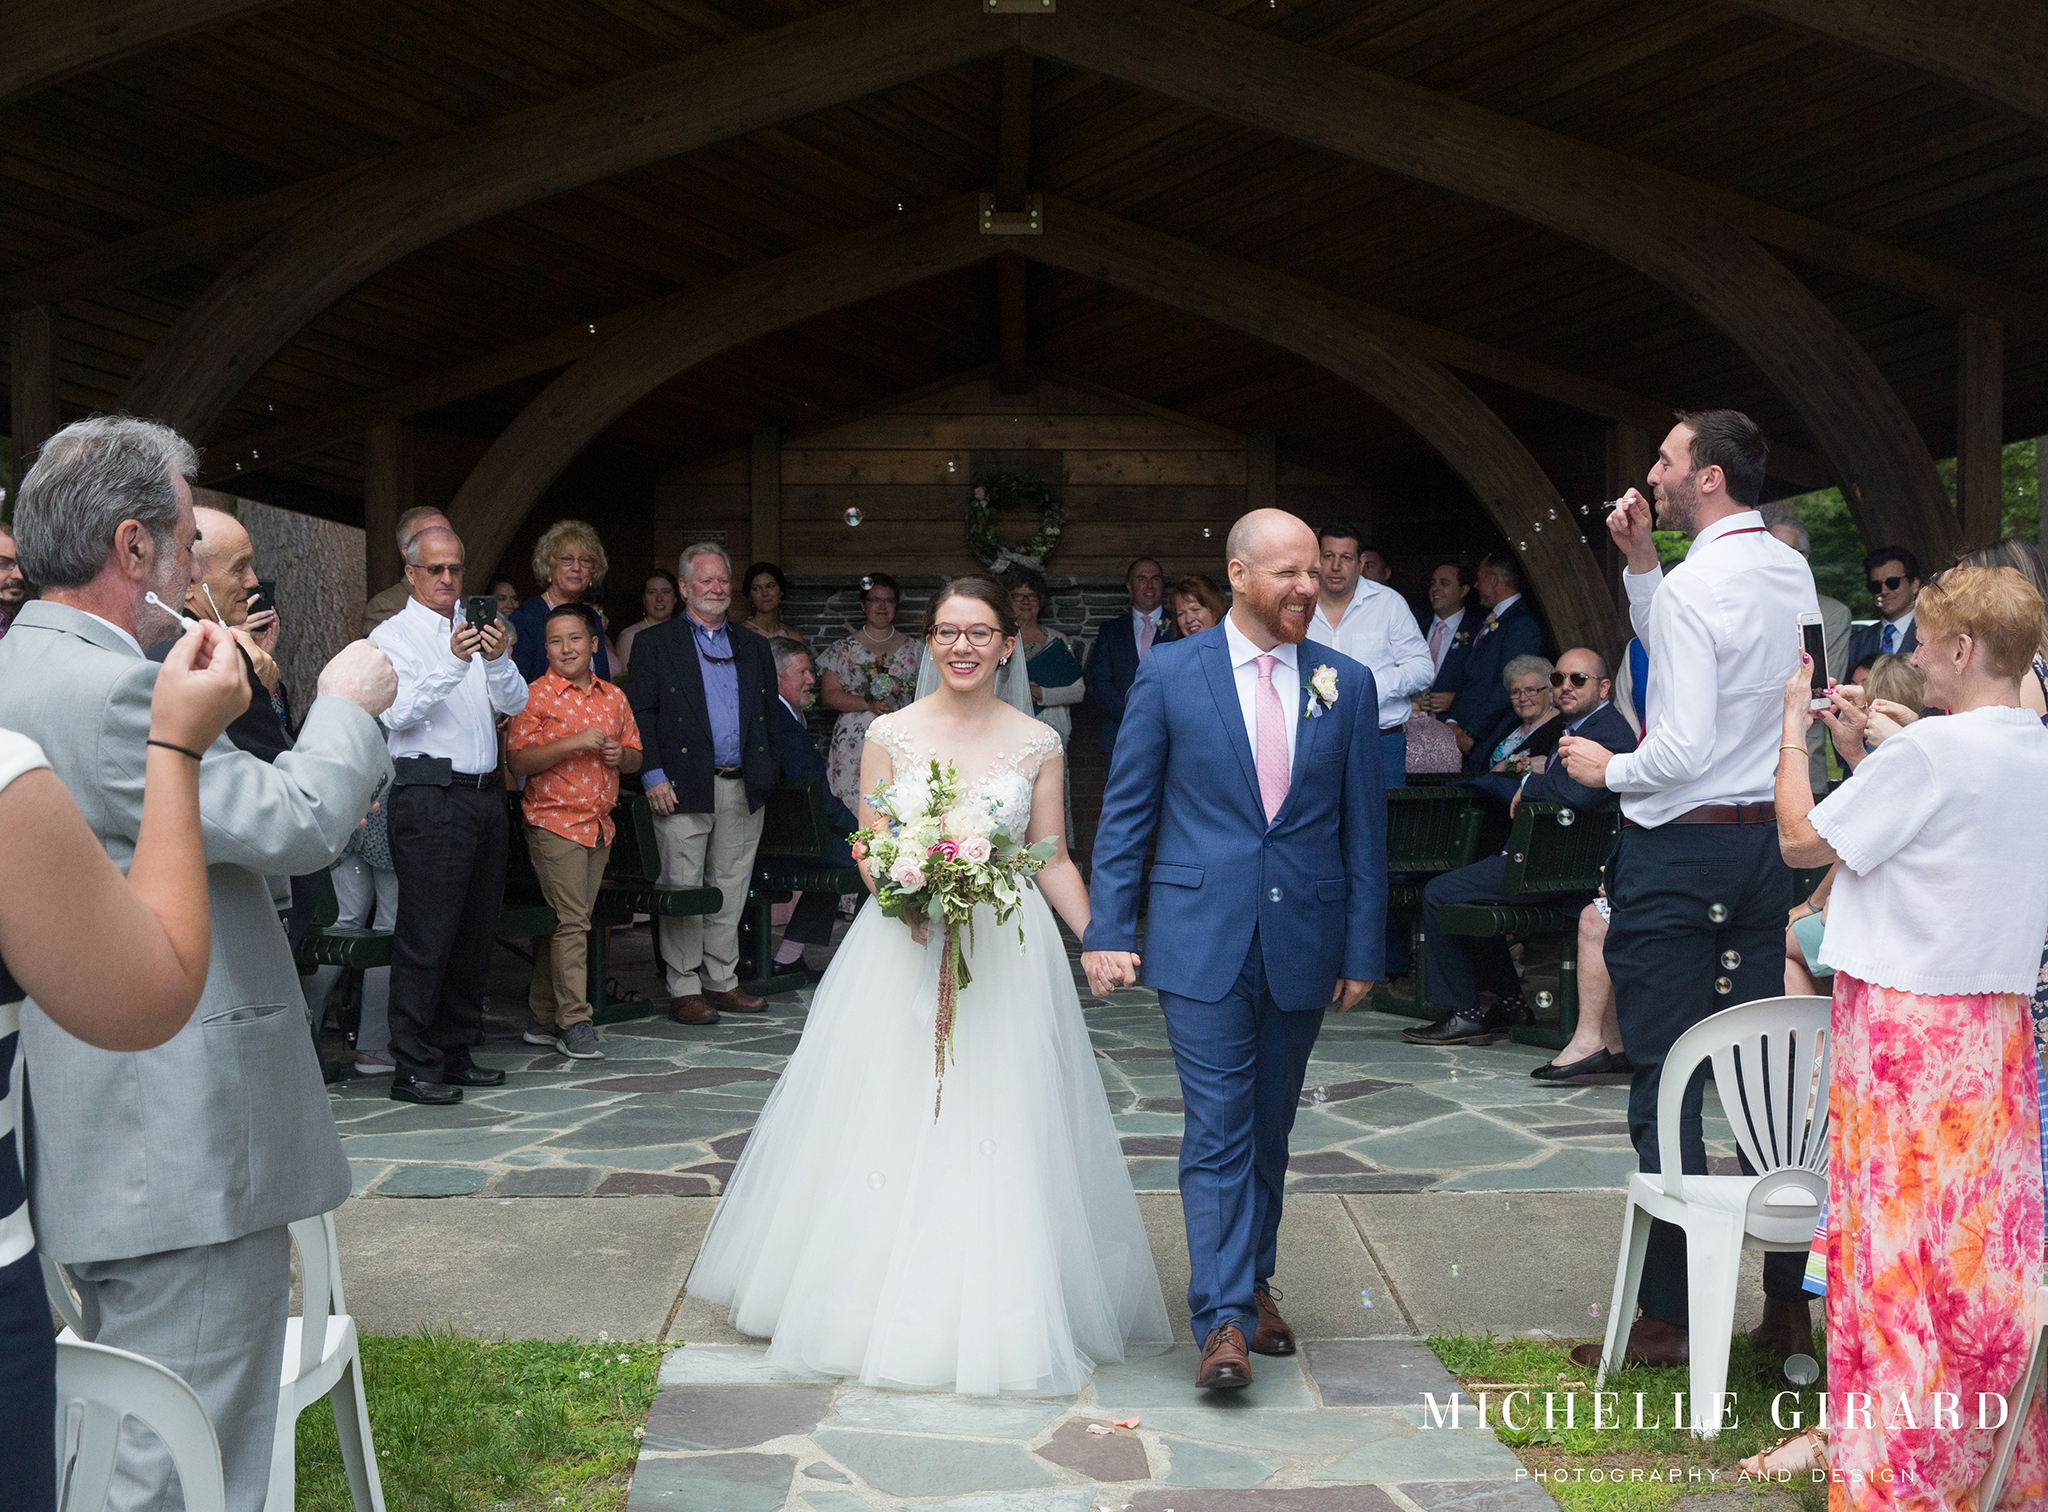 GardenHouse_LookParkWedding_NorthamptonMA_MichelleGirardPhotography3b.jpg